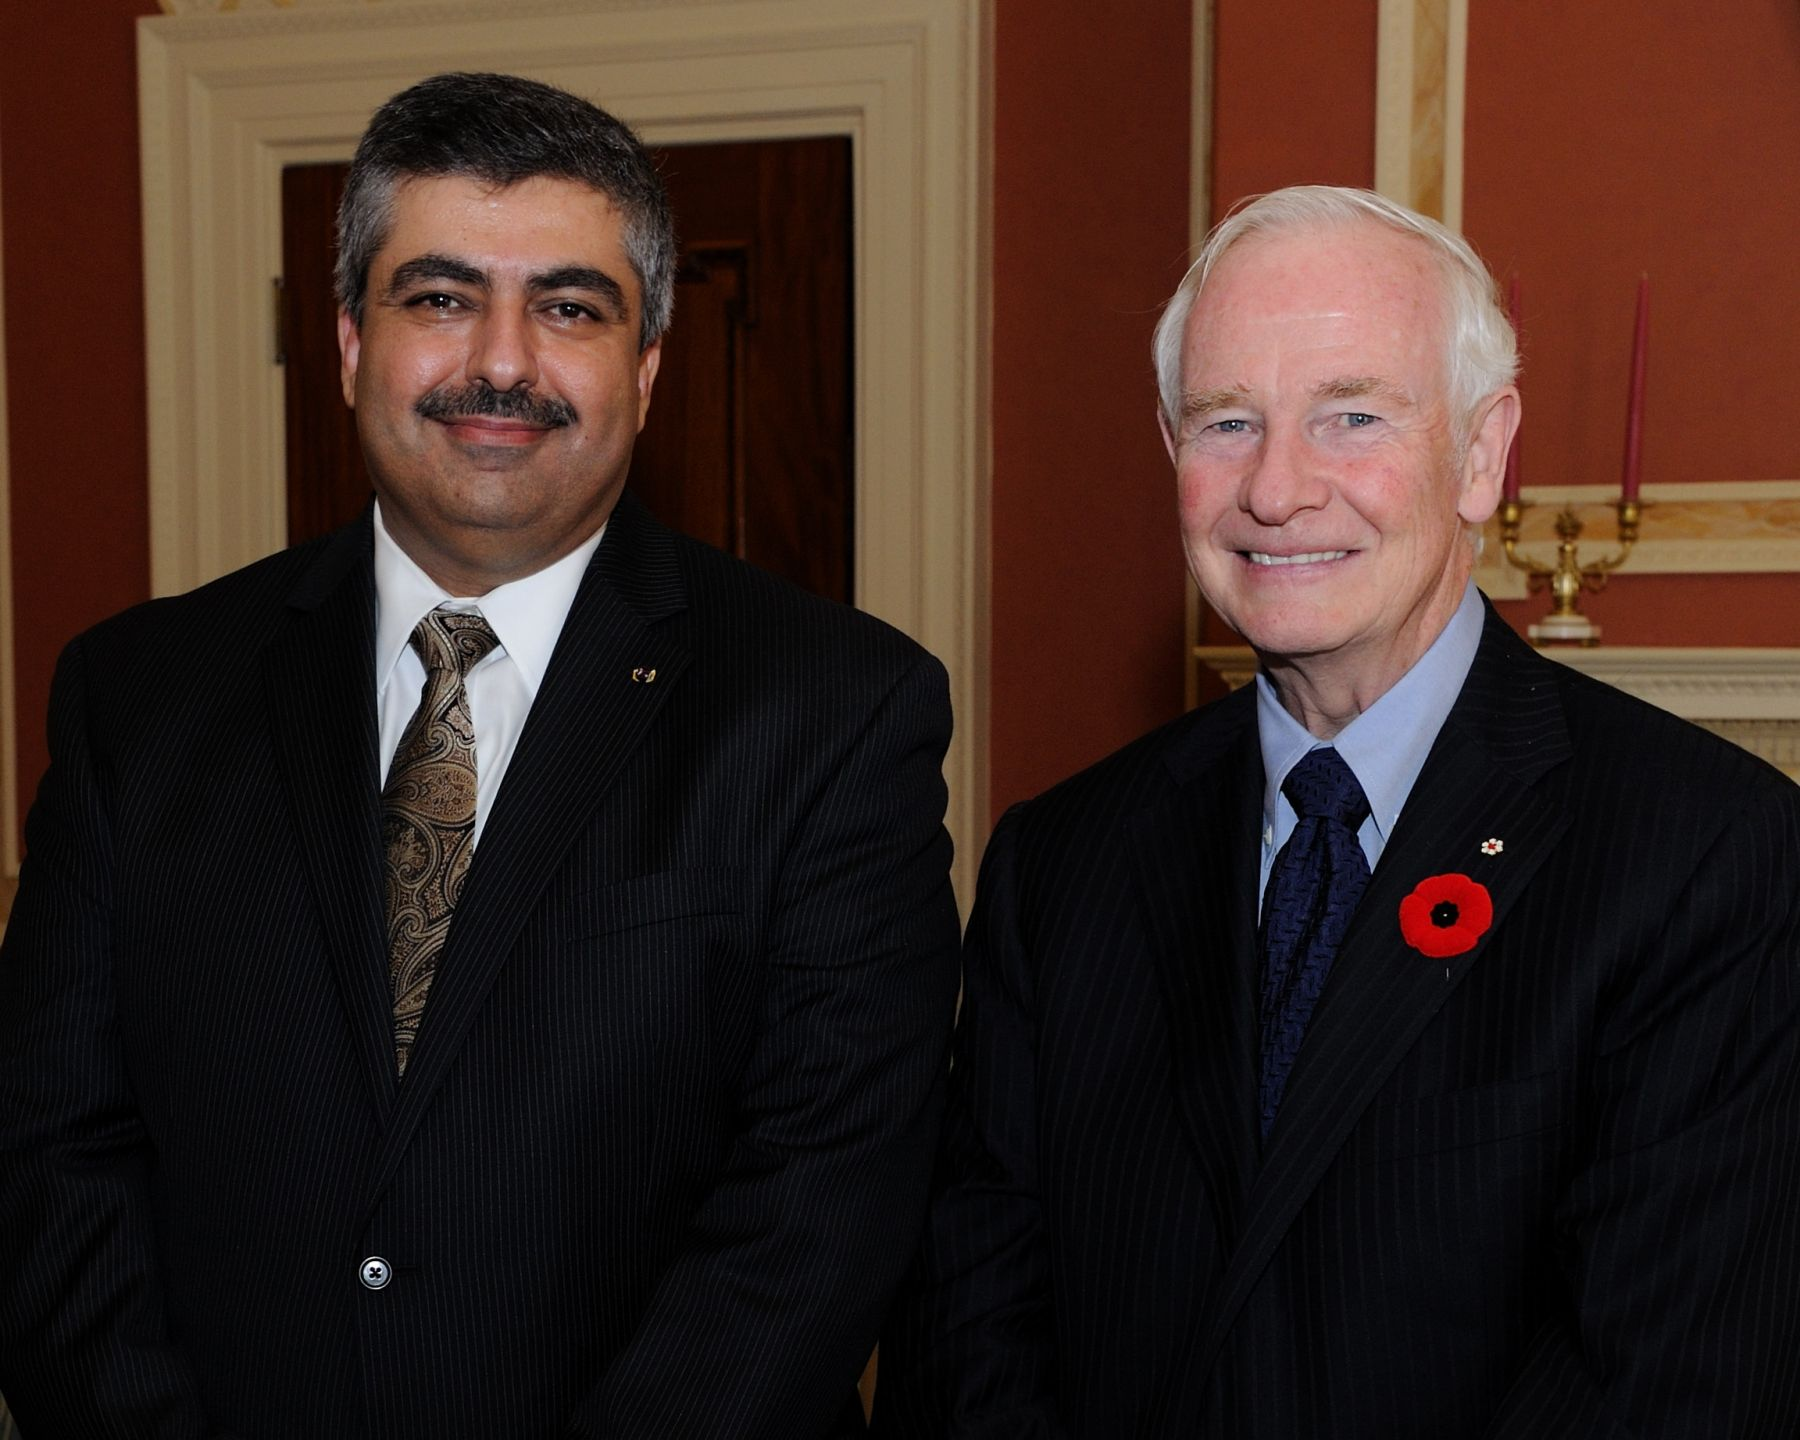 His Excellency the Right Honourable David Johnston, Governor General of Canada, received the credentials of His Excellency Basheer Fawwaz Zoubi, Ambassador of the Hashemite Kingdom of Jordan.